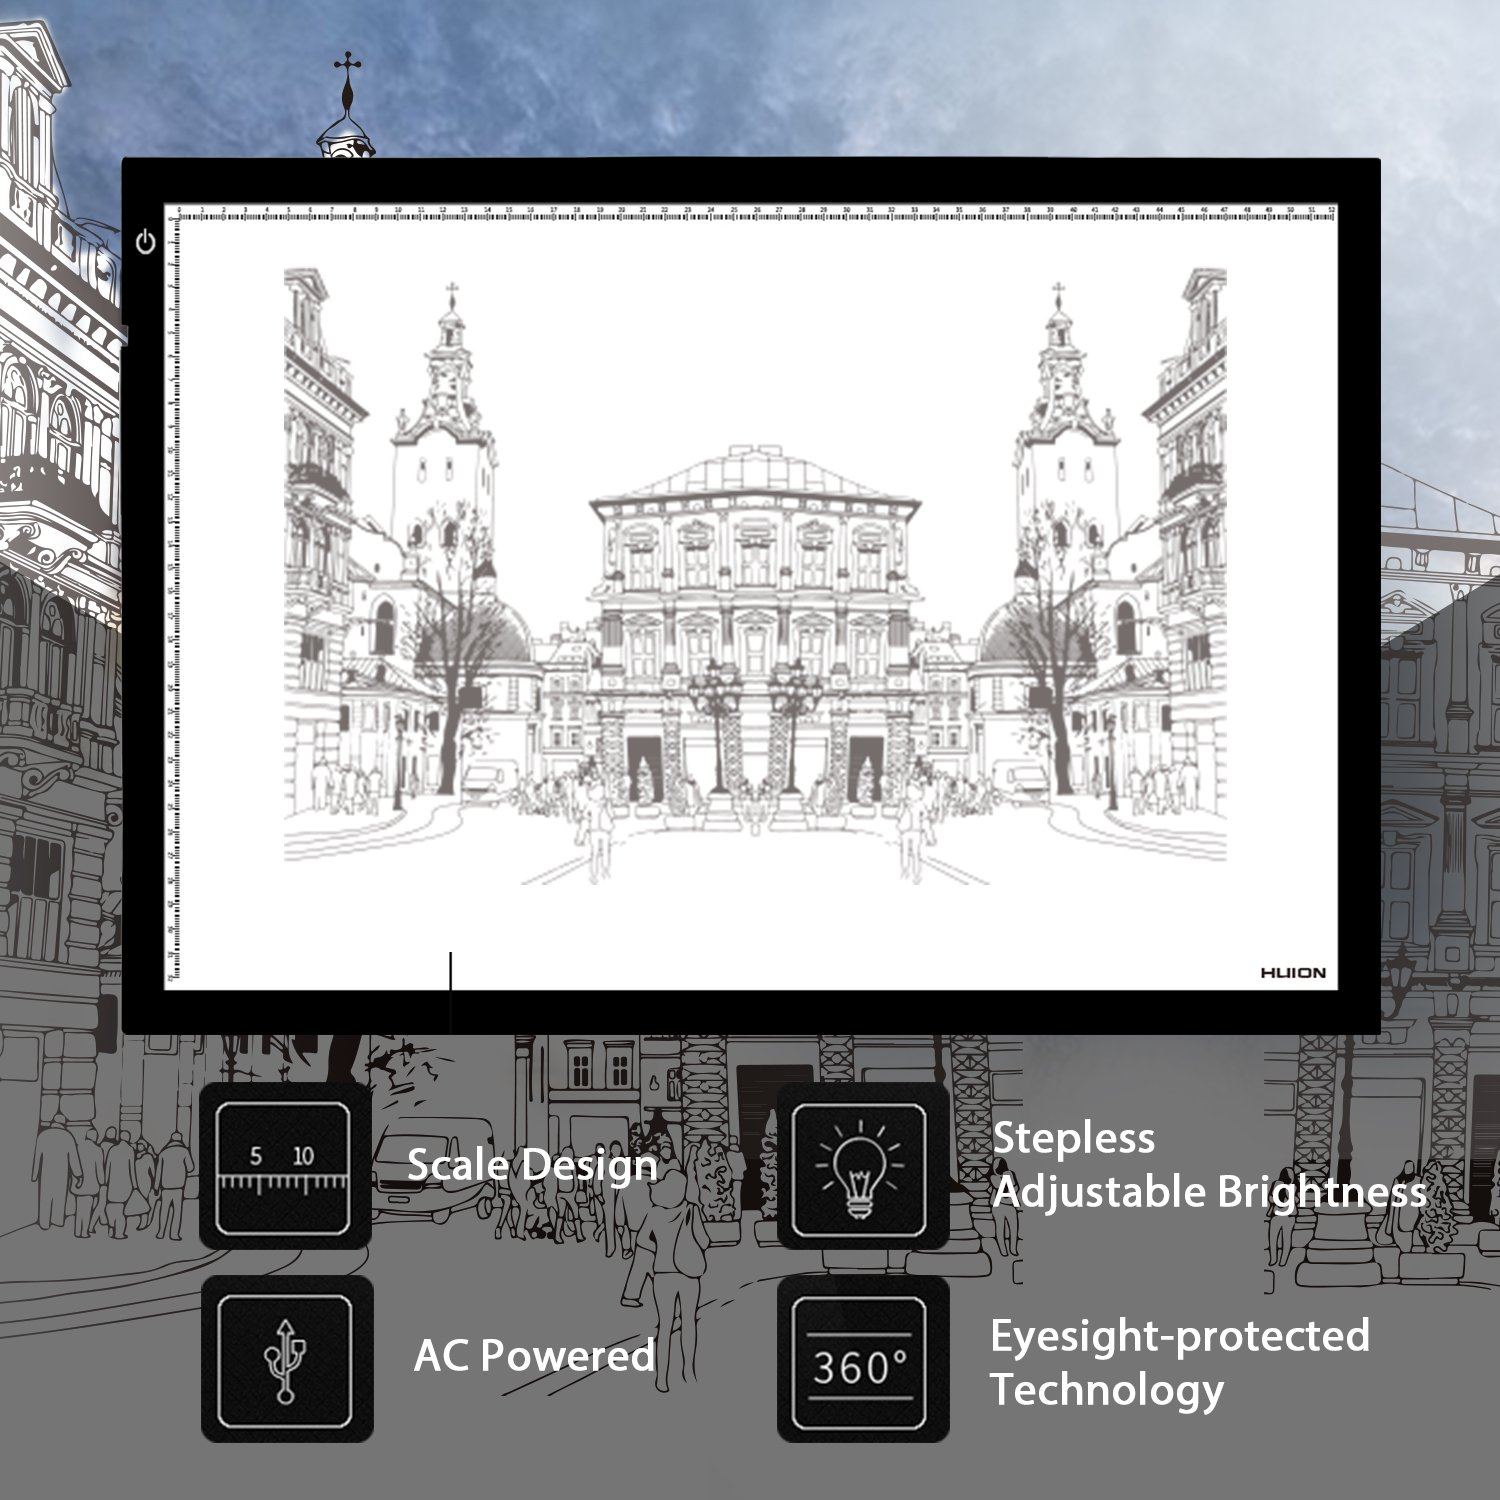 Long service life Huion L4S precise calibration and pinpointing ruler led USB power tracing light pad